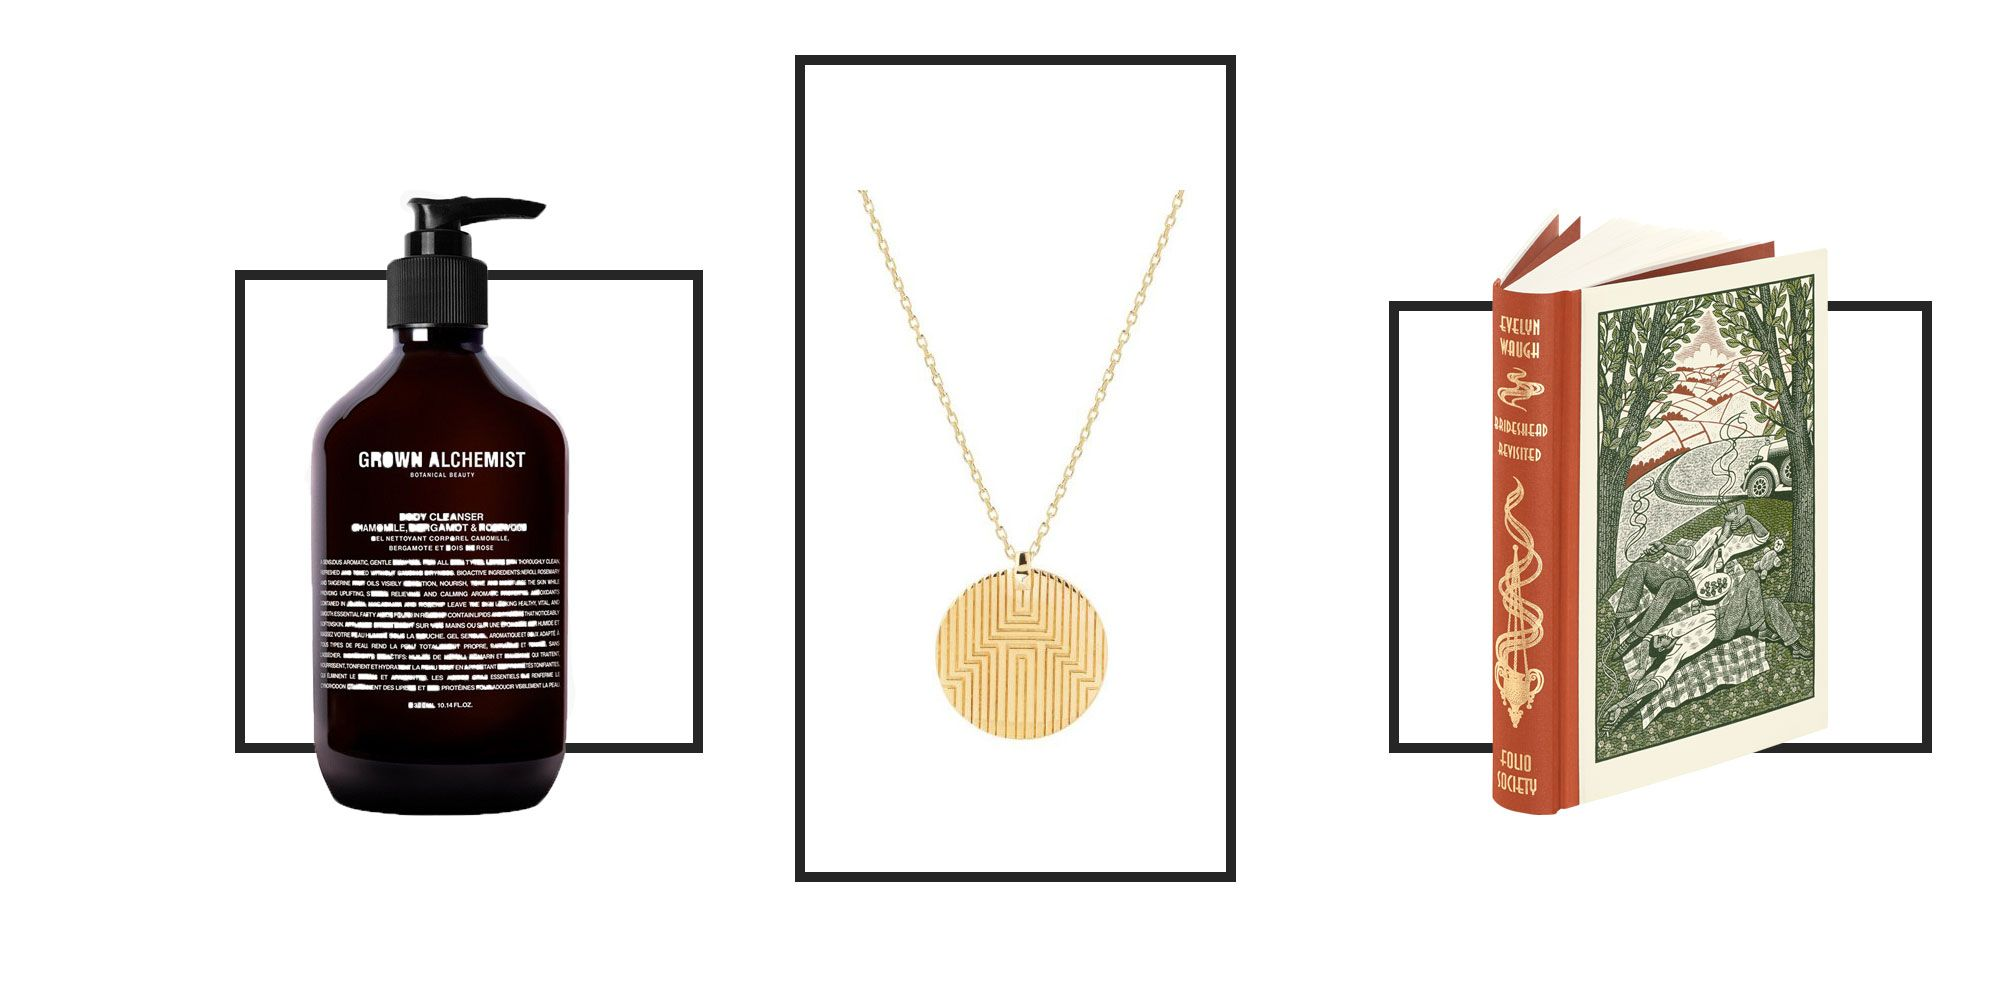 10 sites for Christmas gifts that fashion editors love  sc 1 st  Harperu0027s Bazaar & 10 best independent affordable Christmas gift websites - unusual ...